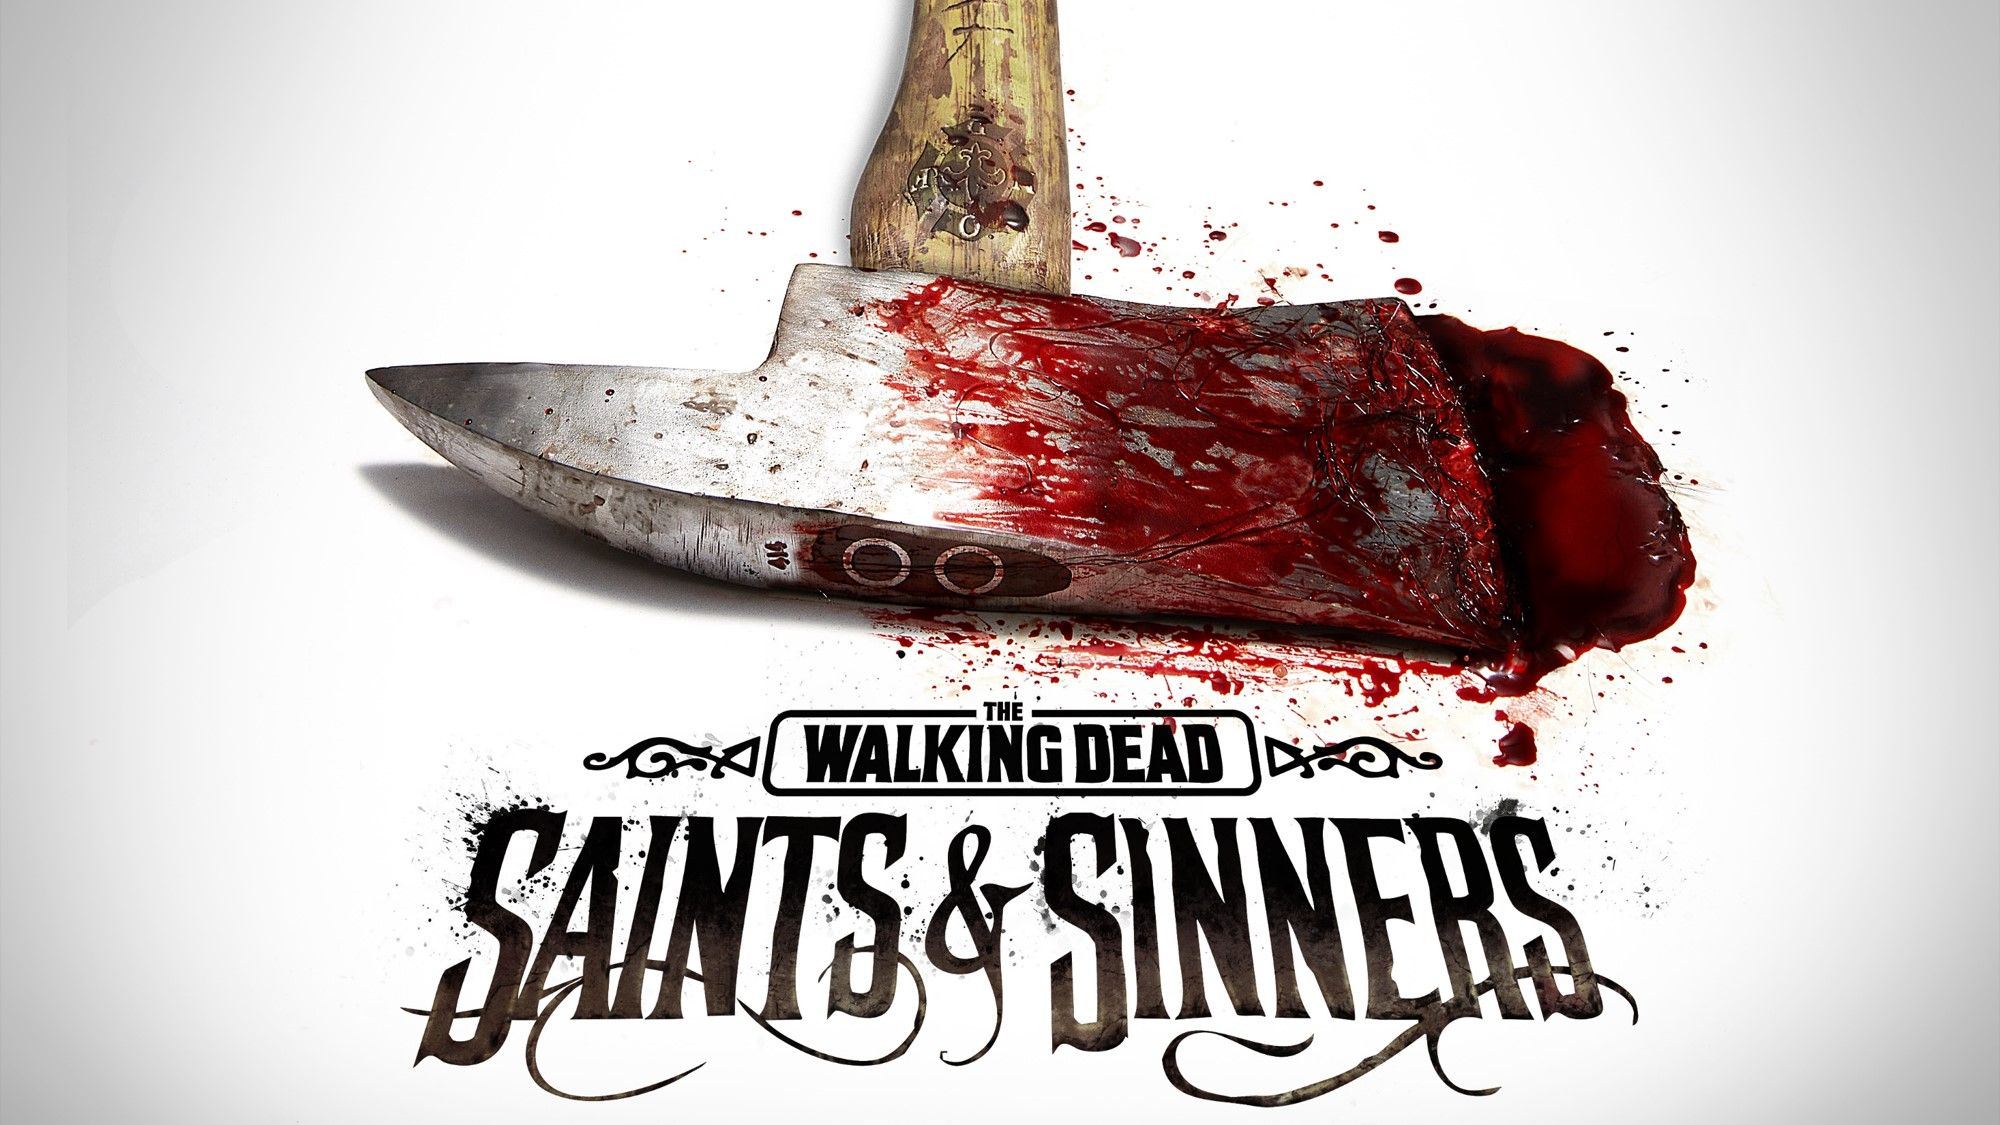 /the-making-of-the-walking-dead-saints-and-sinners-or-skydance-interactive-podcast-ur3o3w3e feature image